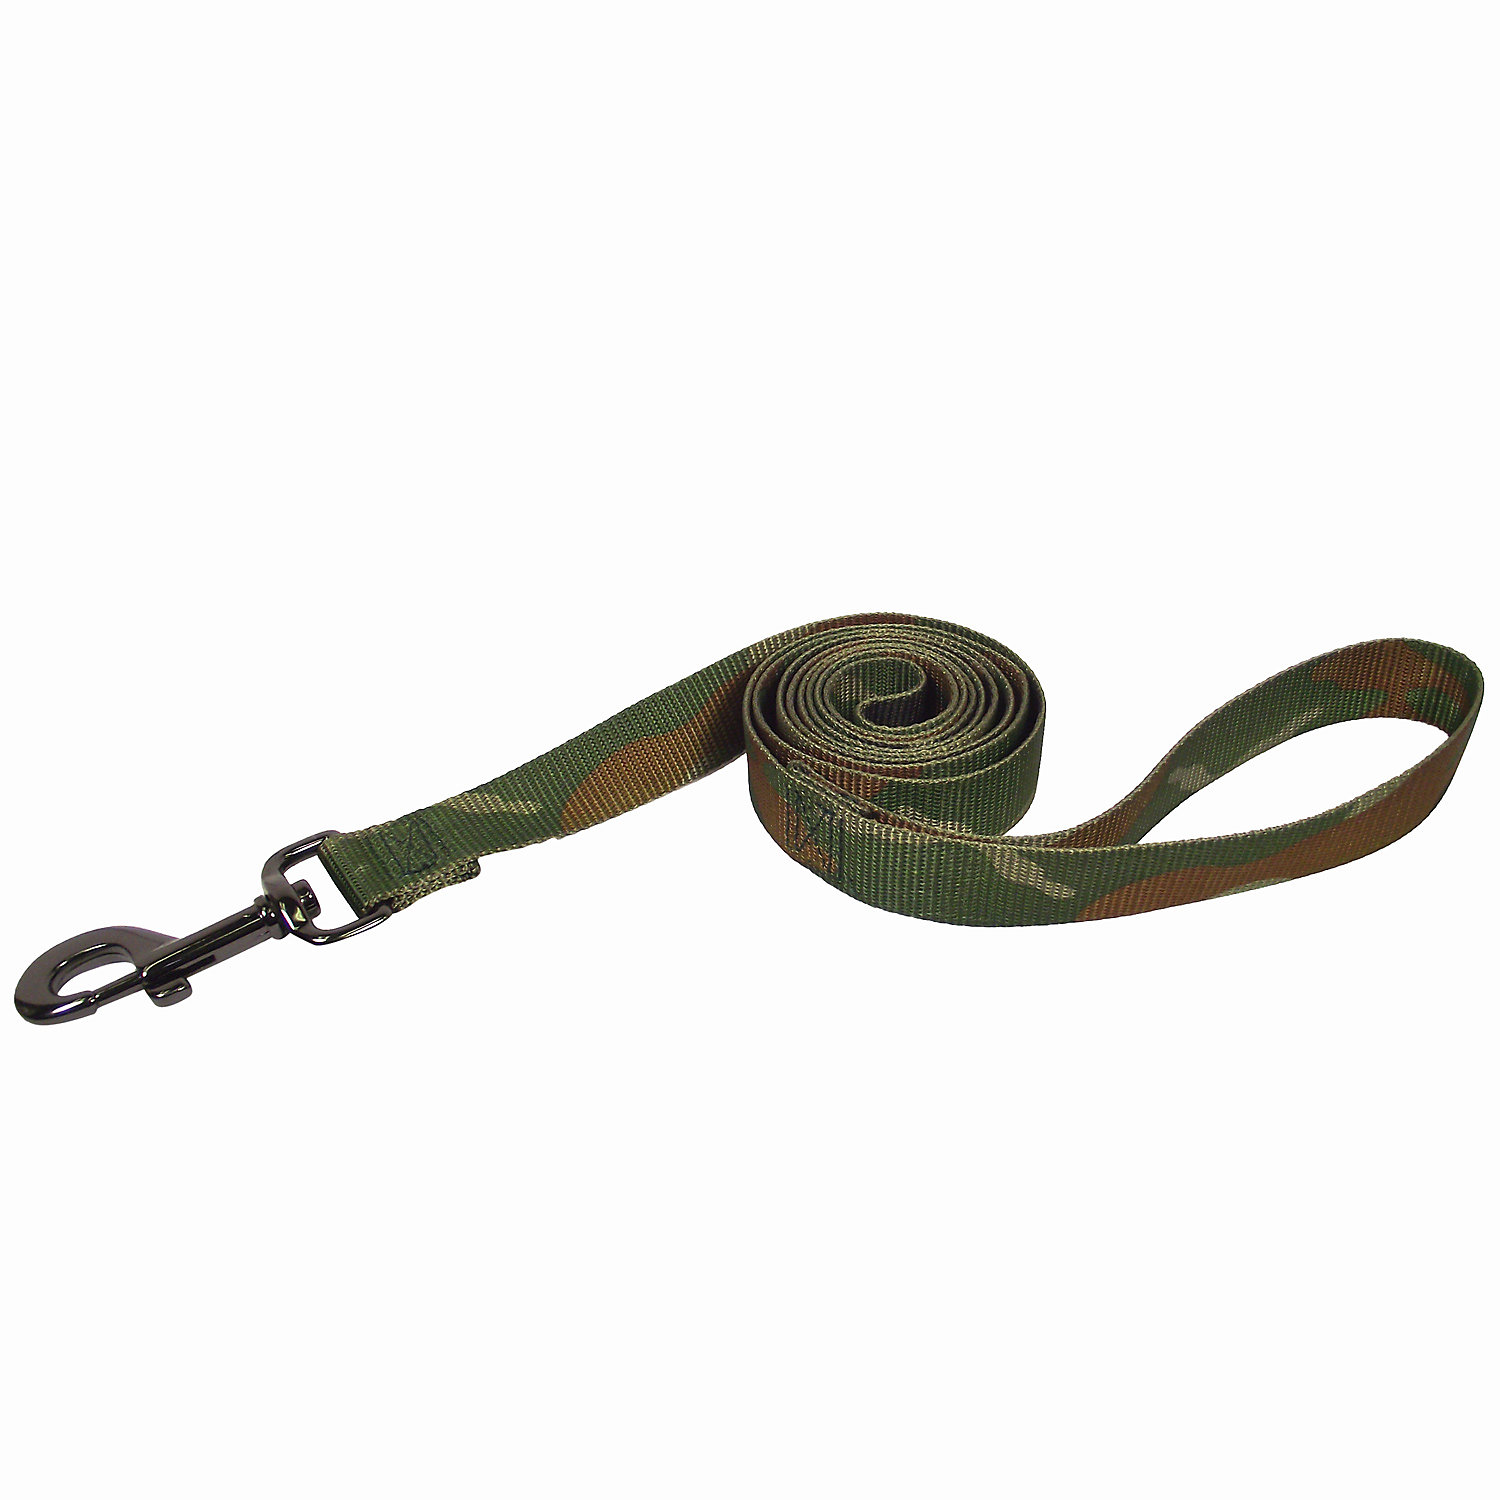 Hamilton Nylon Dog Leash In Camouflage Print